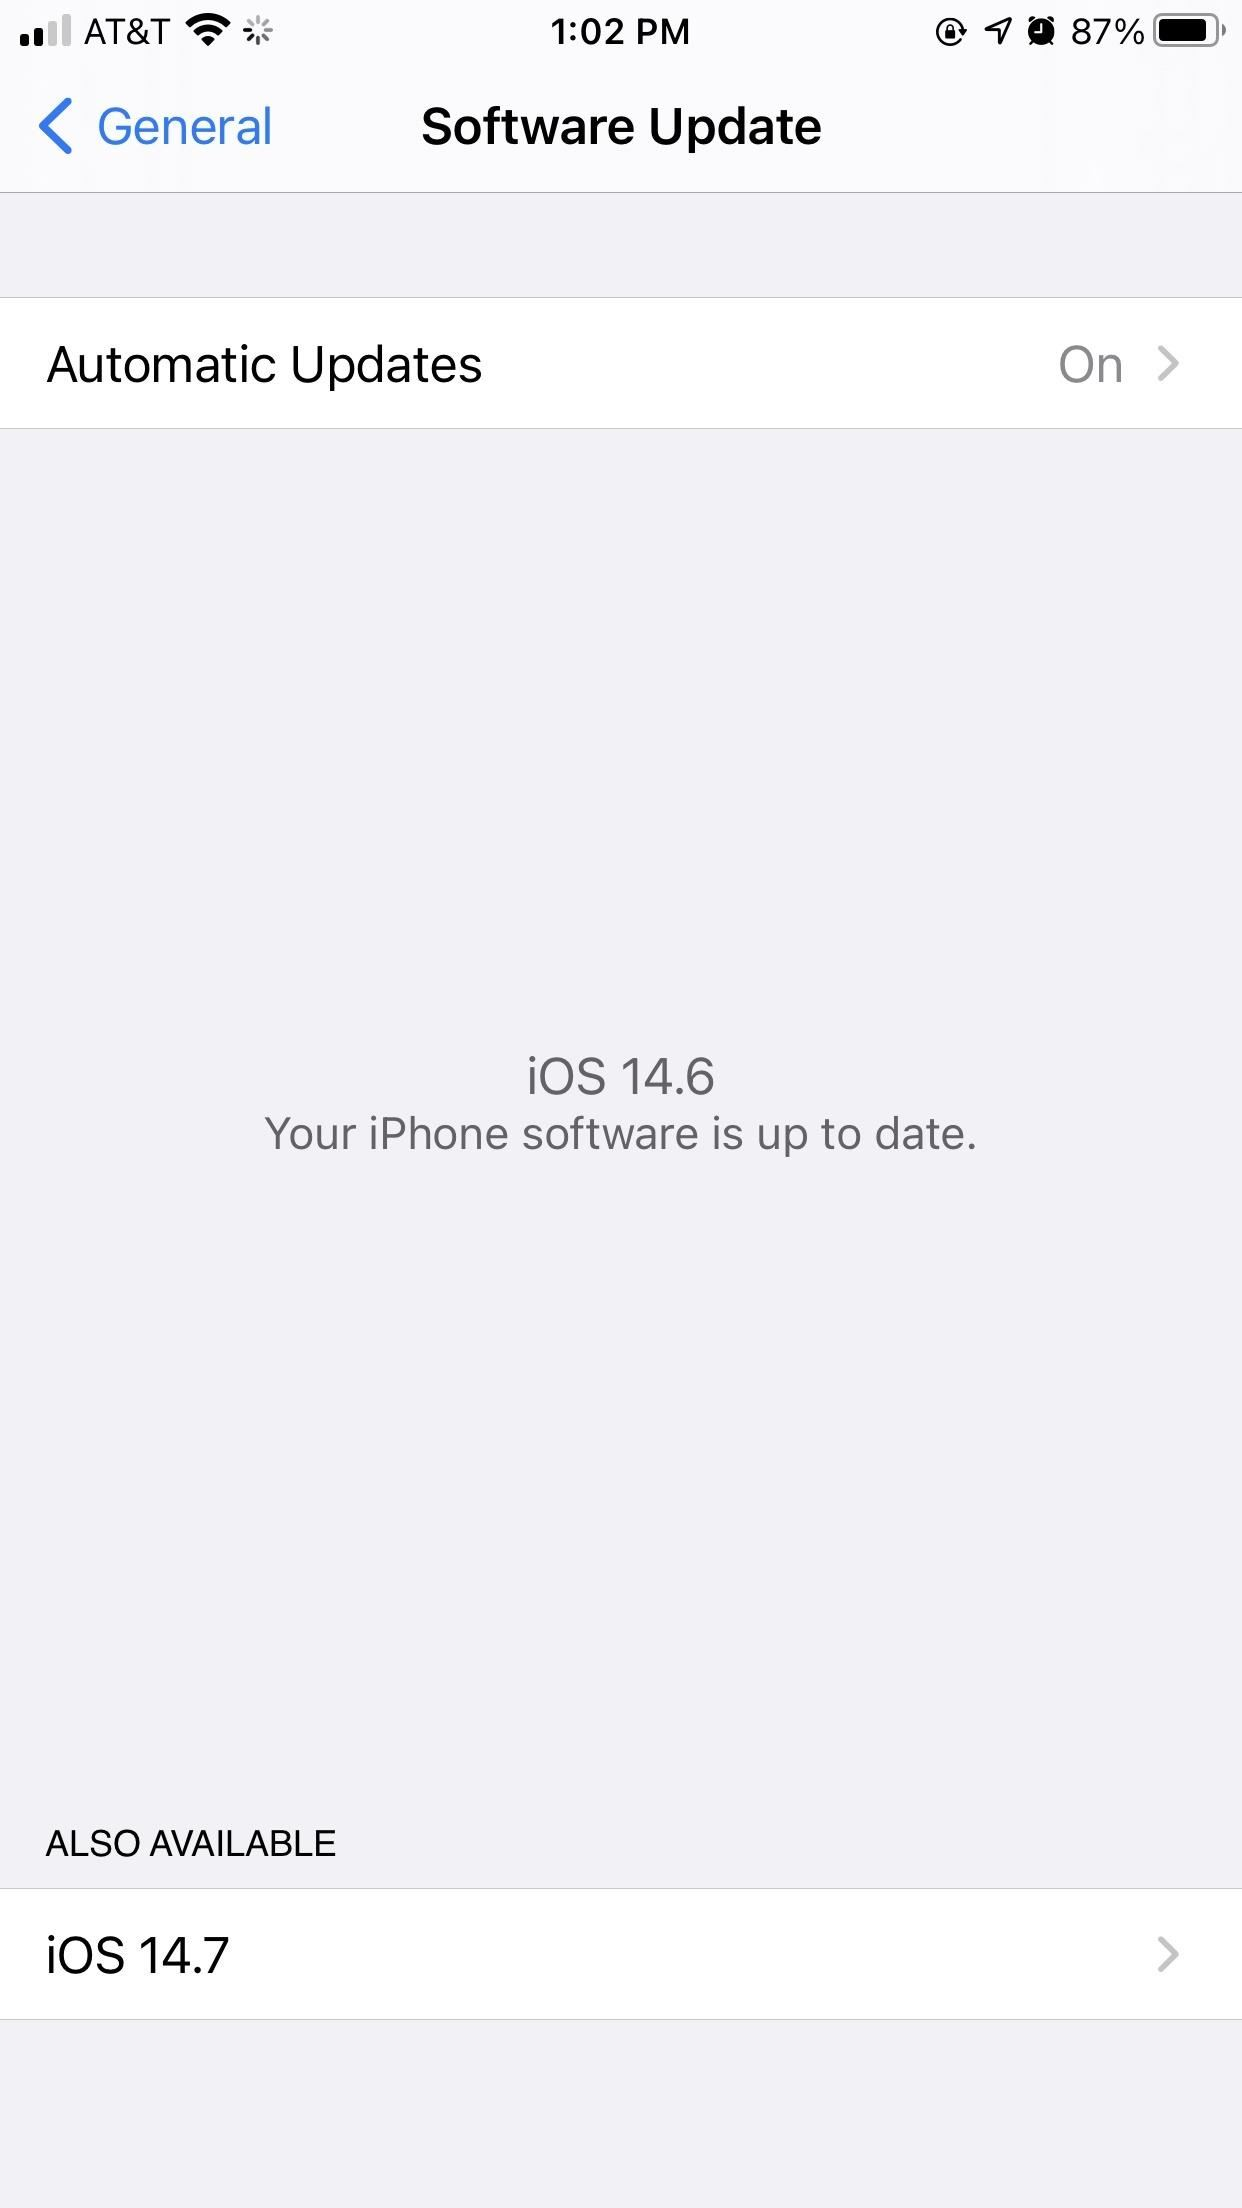 Apple Releases iOS 14.7 Beta 1 for iOS Developers & Public Testers